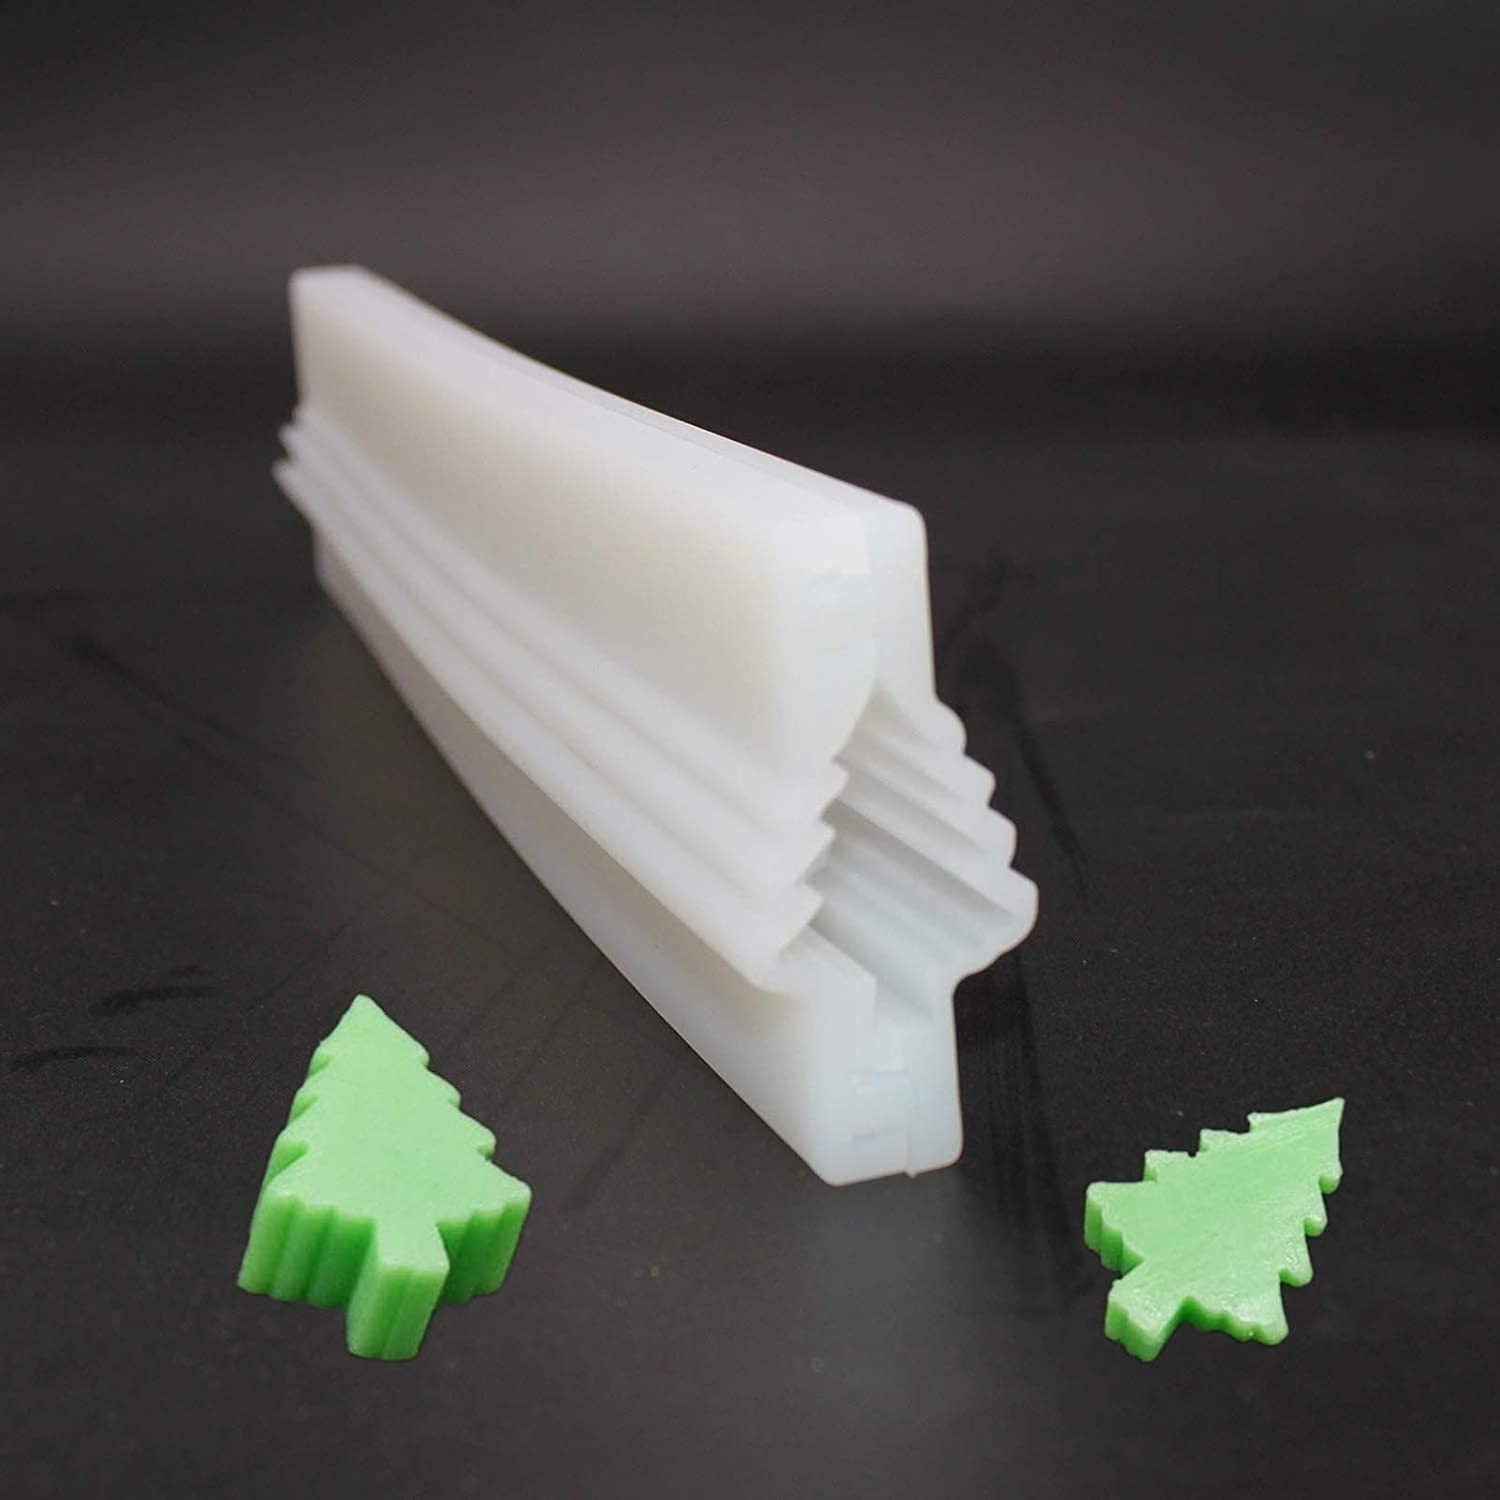 Christmas Tree Tube Column Silicone Soap Mold Embed Soap Making Supplies